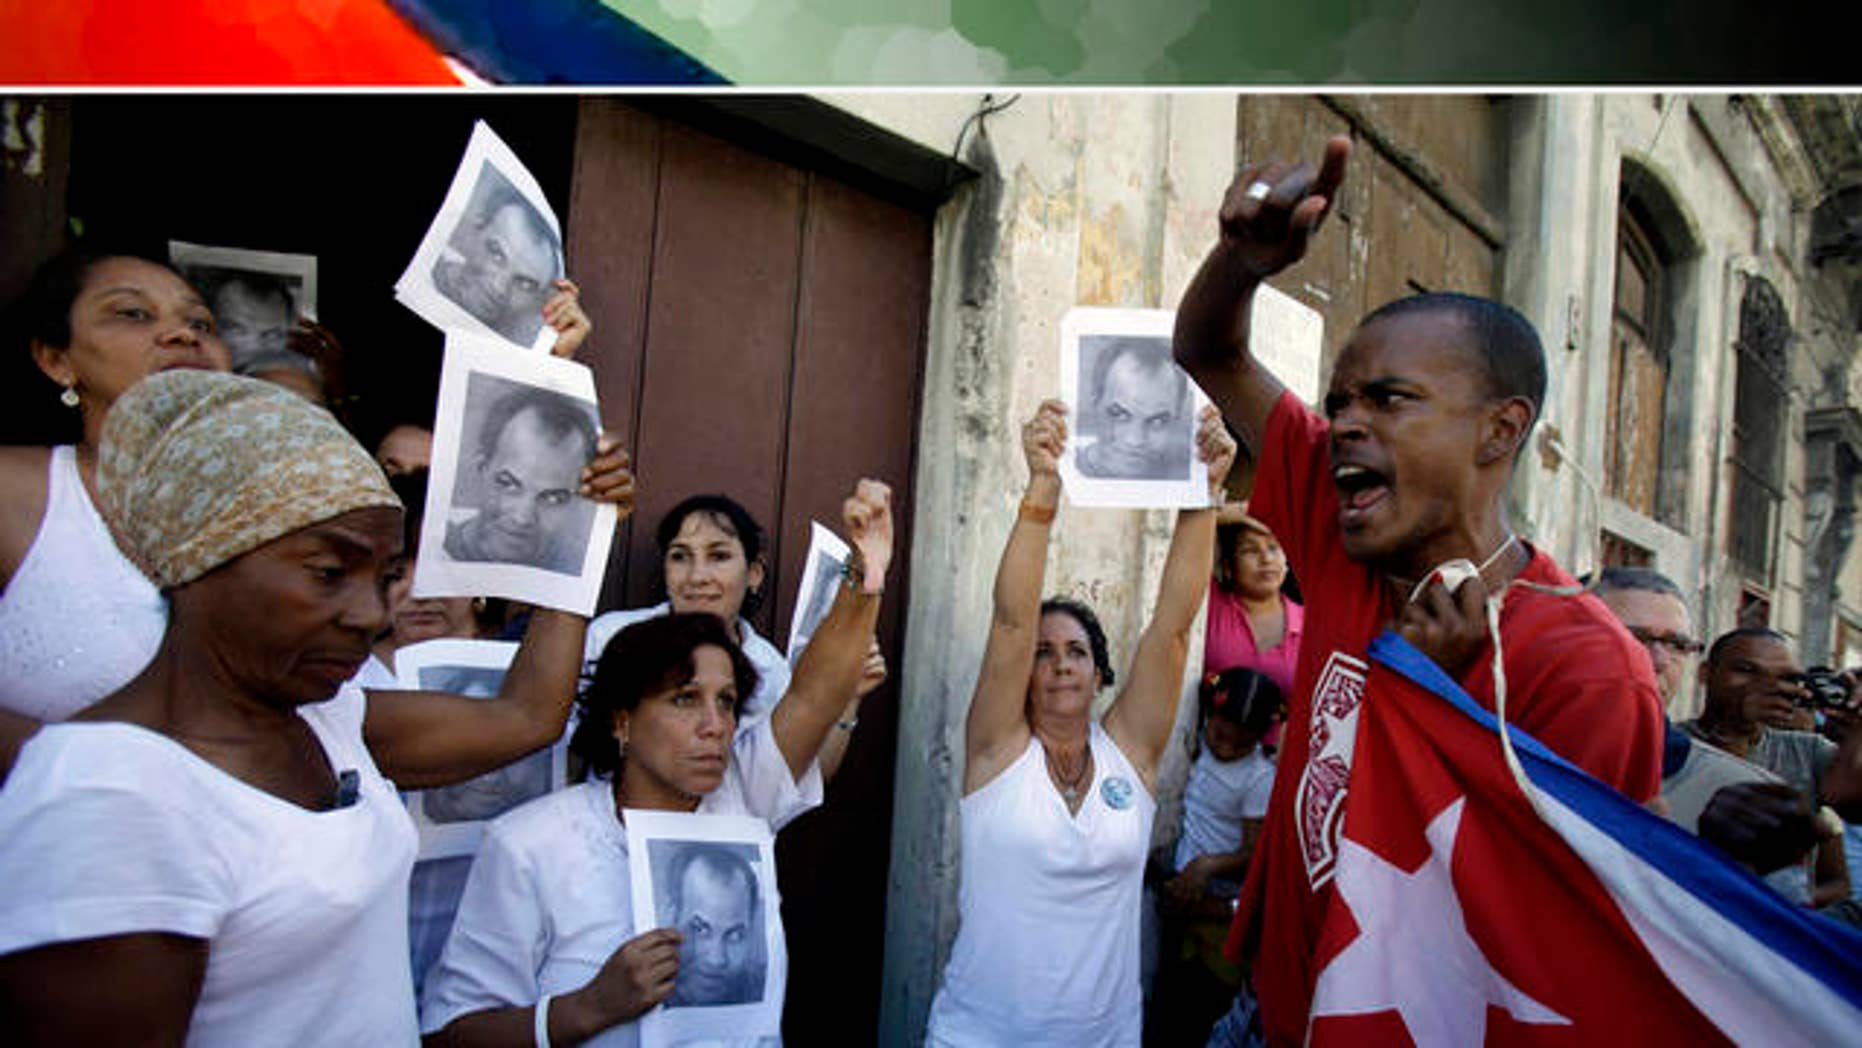 A government supporter, right, chants revolutionary slogans as members of dissident group Ladies in White hold up images of late dissident Orlando Zapata Tamayo on the first anniversary of his death in Havana, Cuba, Wednesday Feb. 23, 2011. Ladies in White is a group of relatives of Cuban dissidents who were or are still imprisoned.  (AP Photo/Javier Galeano)